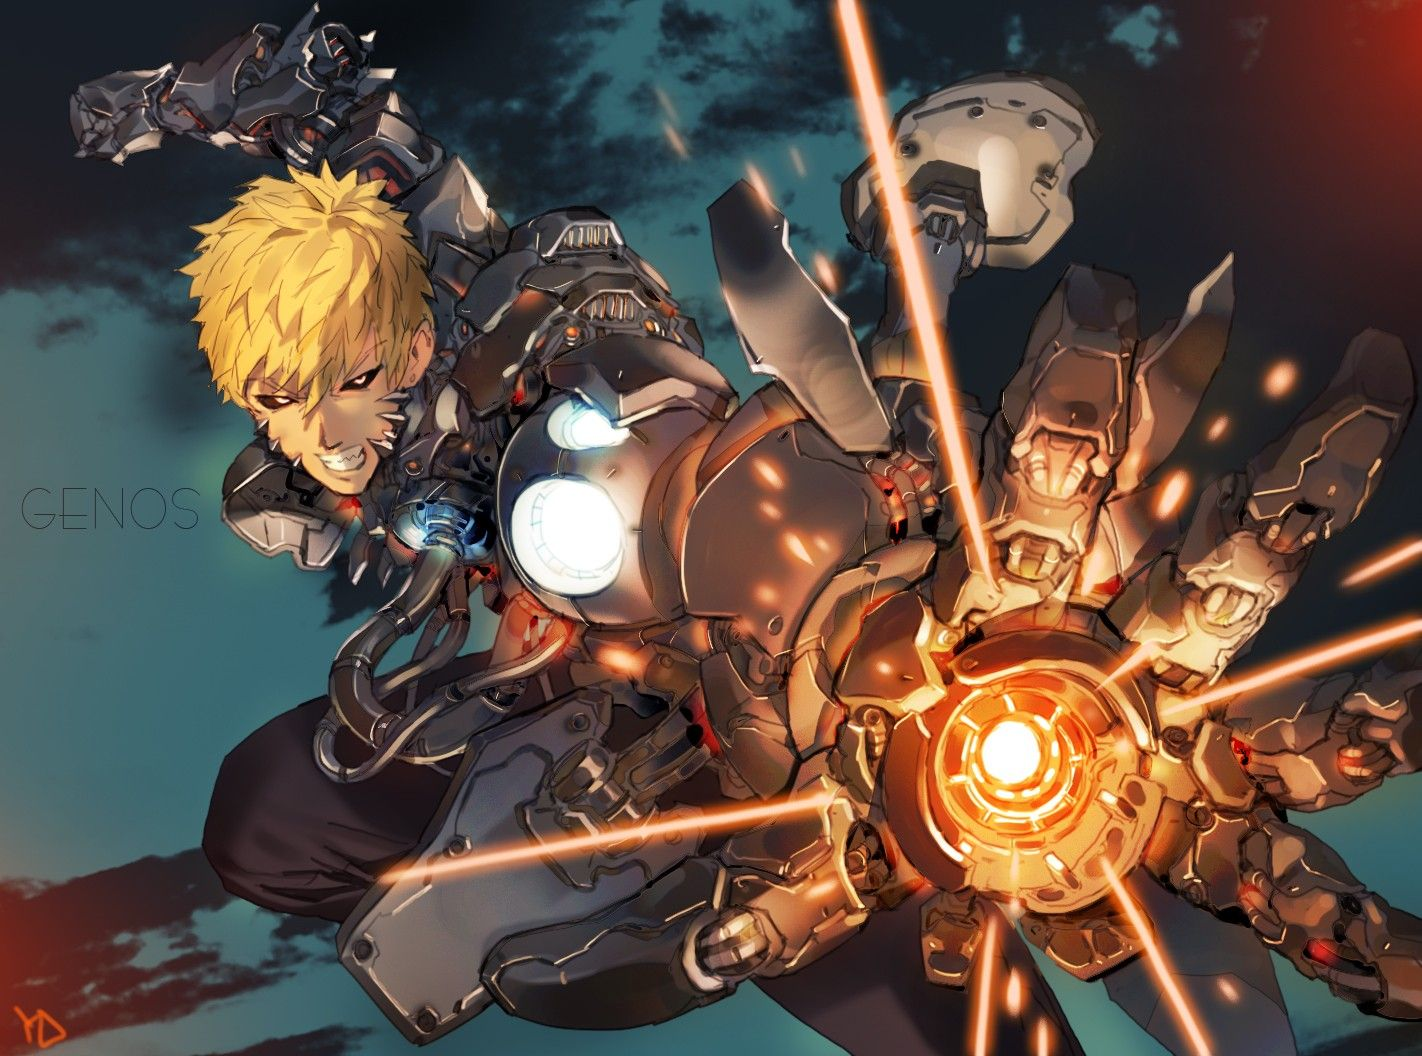 Incinerate Genos Personagens de anime, Anime luta, Anime